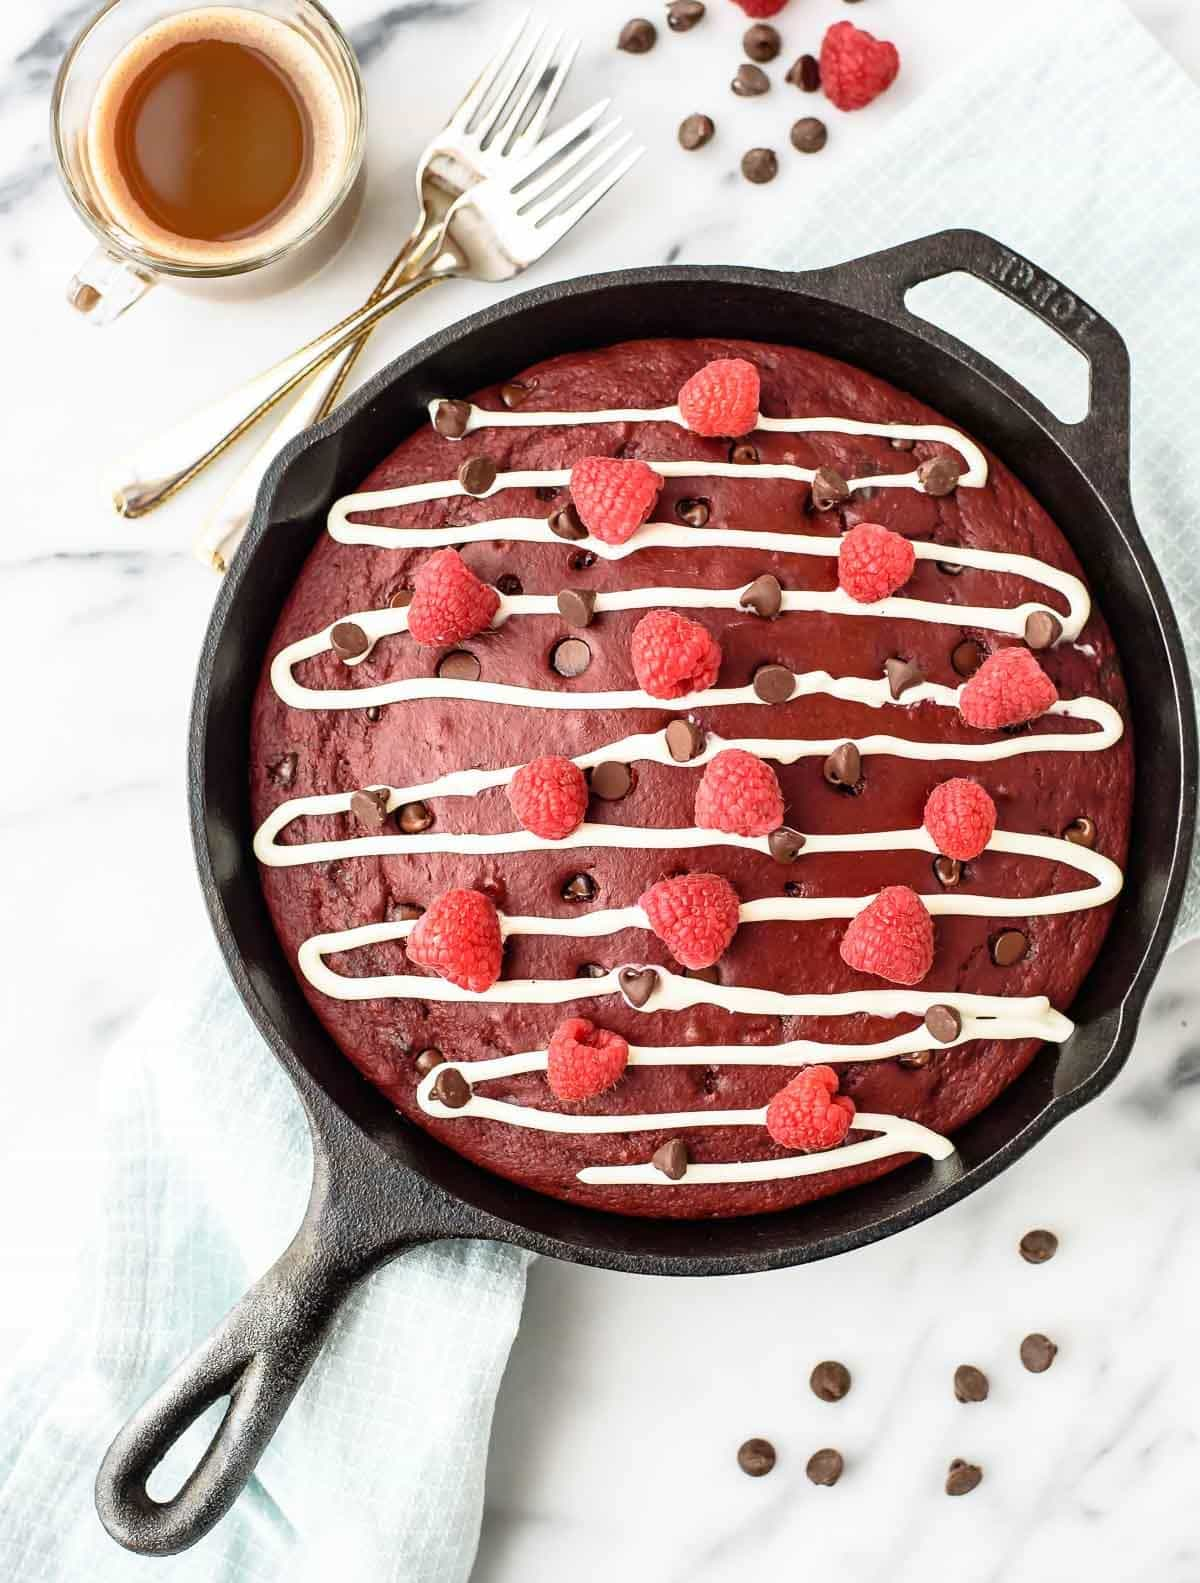 Easy Red Velvet Pancakes recipe with Cream Cheese Topping and Chocolate Chips